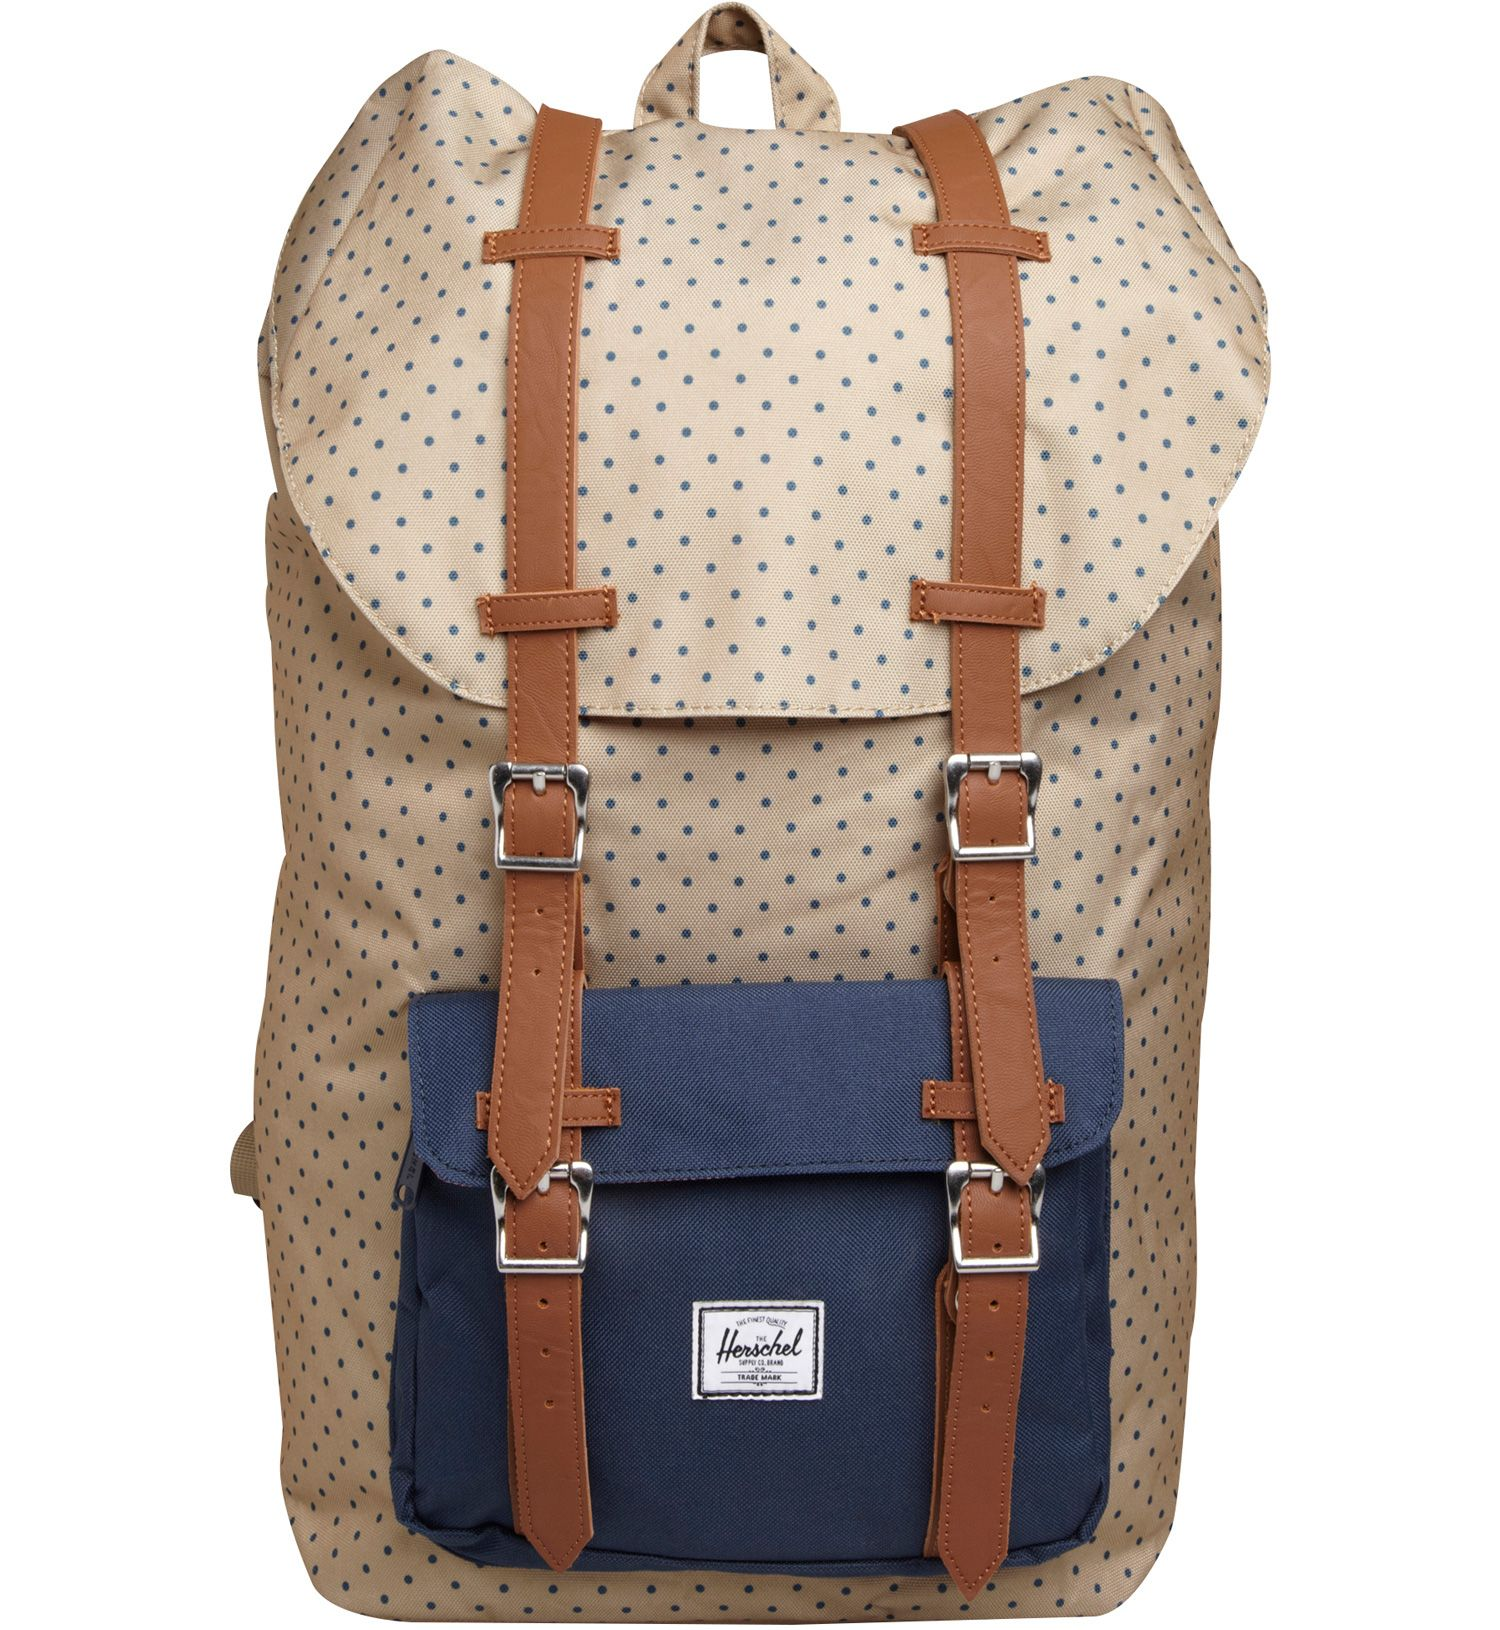 herschel sac dos little america beige tu herschel marques voyages pinterest. Black Bedroom Furniture Sets. Home Design Ideas